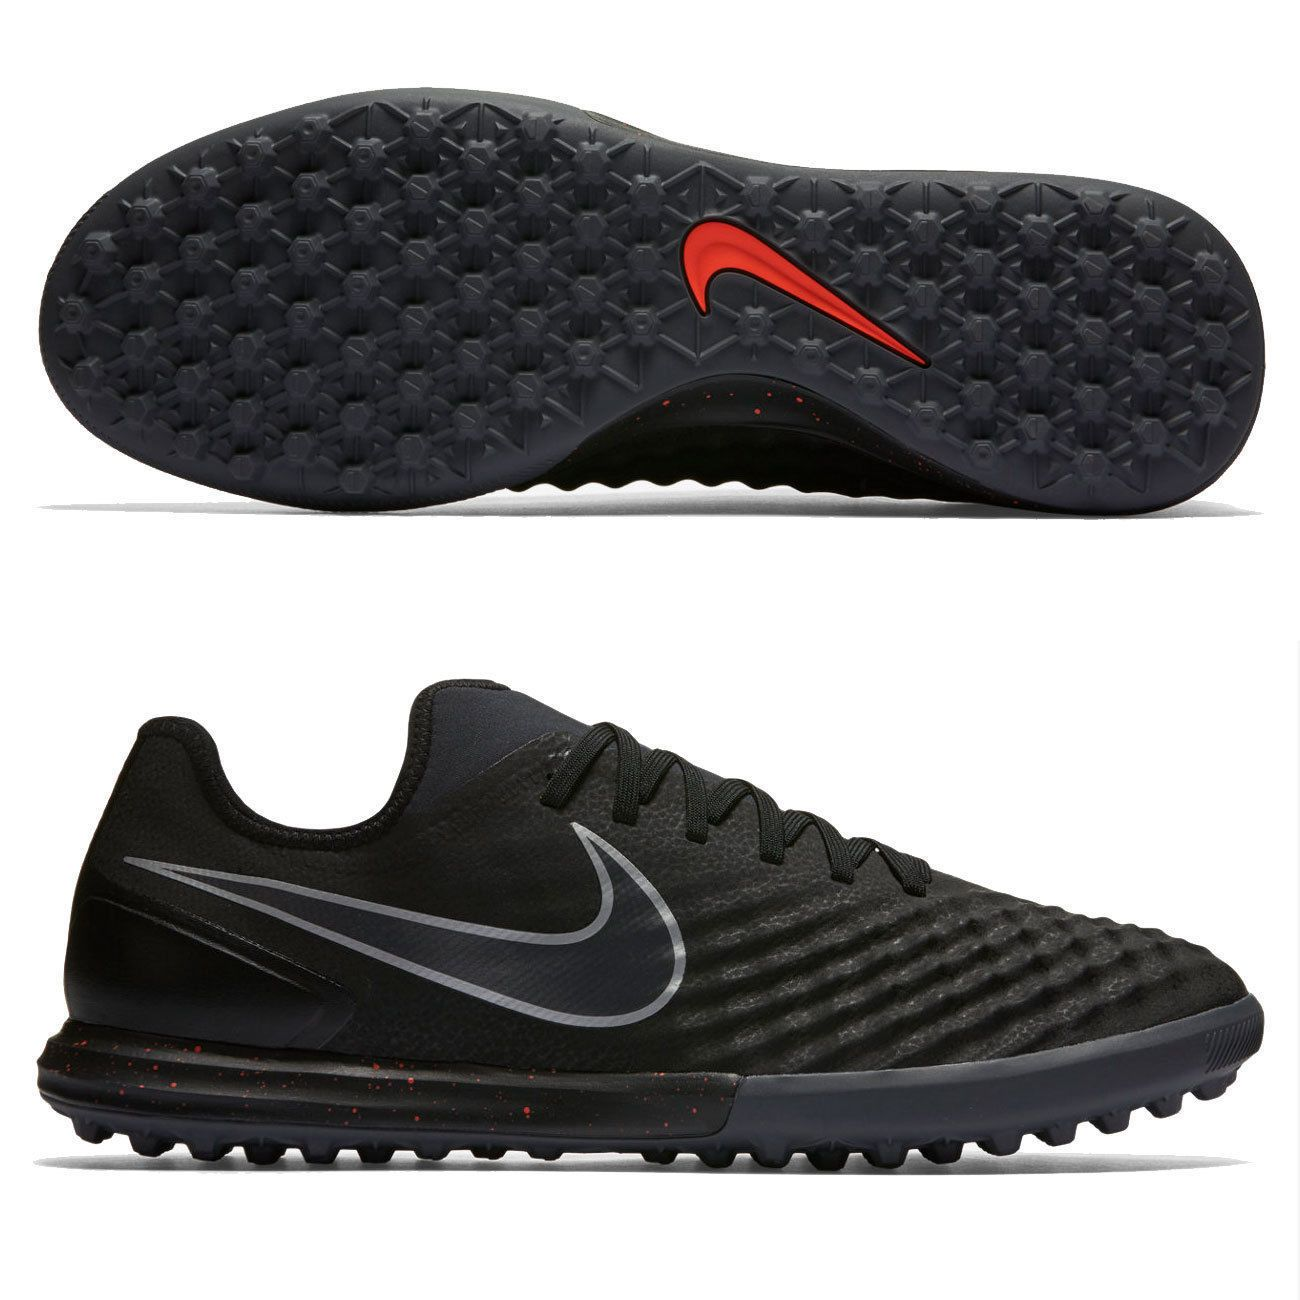 New Mens 2016 Nike MagistaX Finale II TF Turf Soccer Shoes 8.5 Black  844446-008